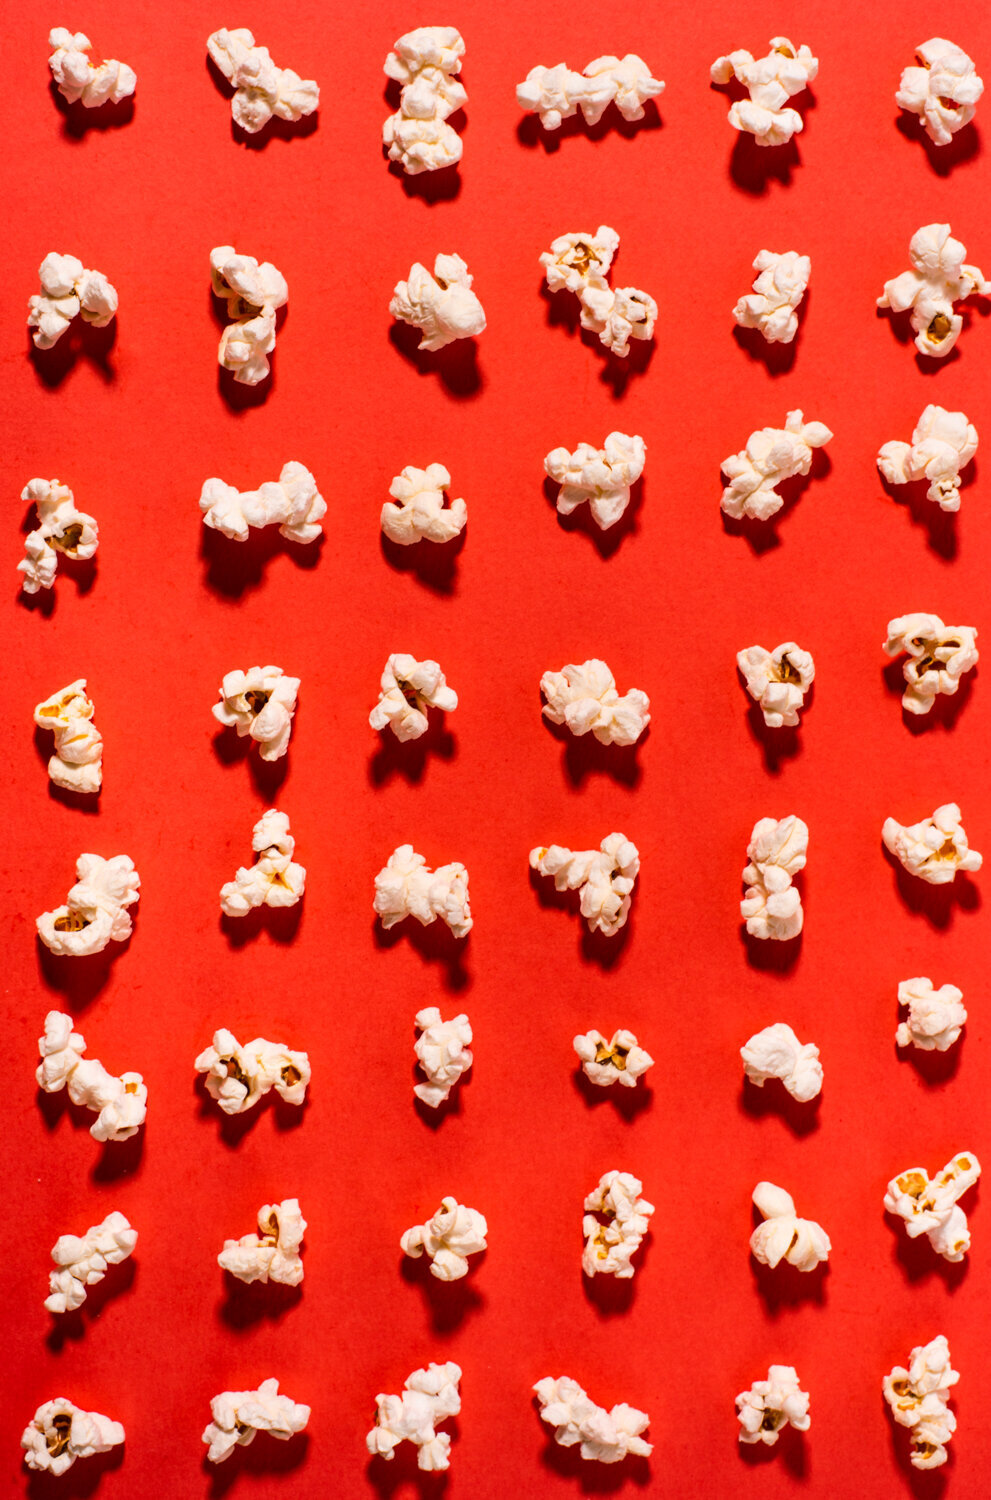 tiled popcorn on red